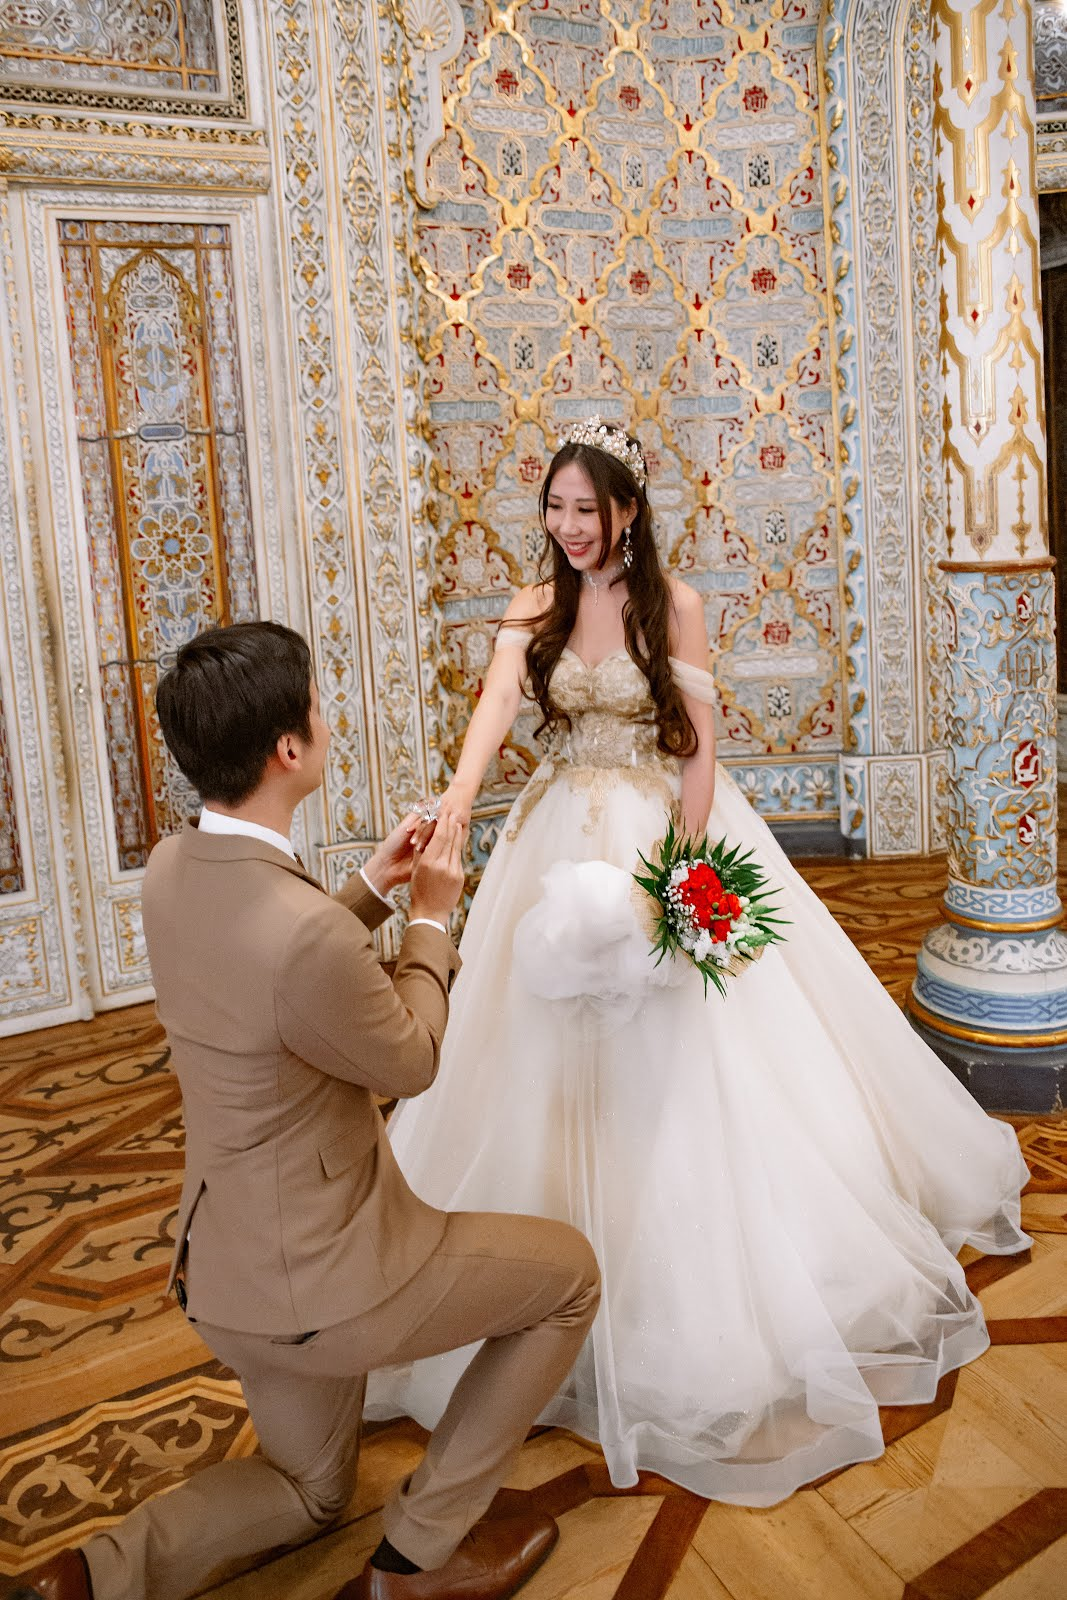 Dr Victor Teng & Sara Shantelle Lim's Pre-Wedding Photos at BOLSA PALACE Portugal (PART 1)